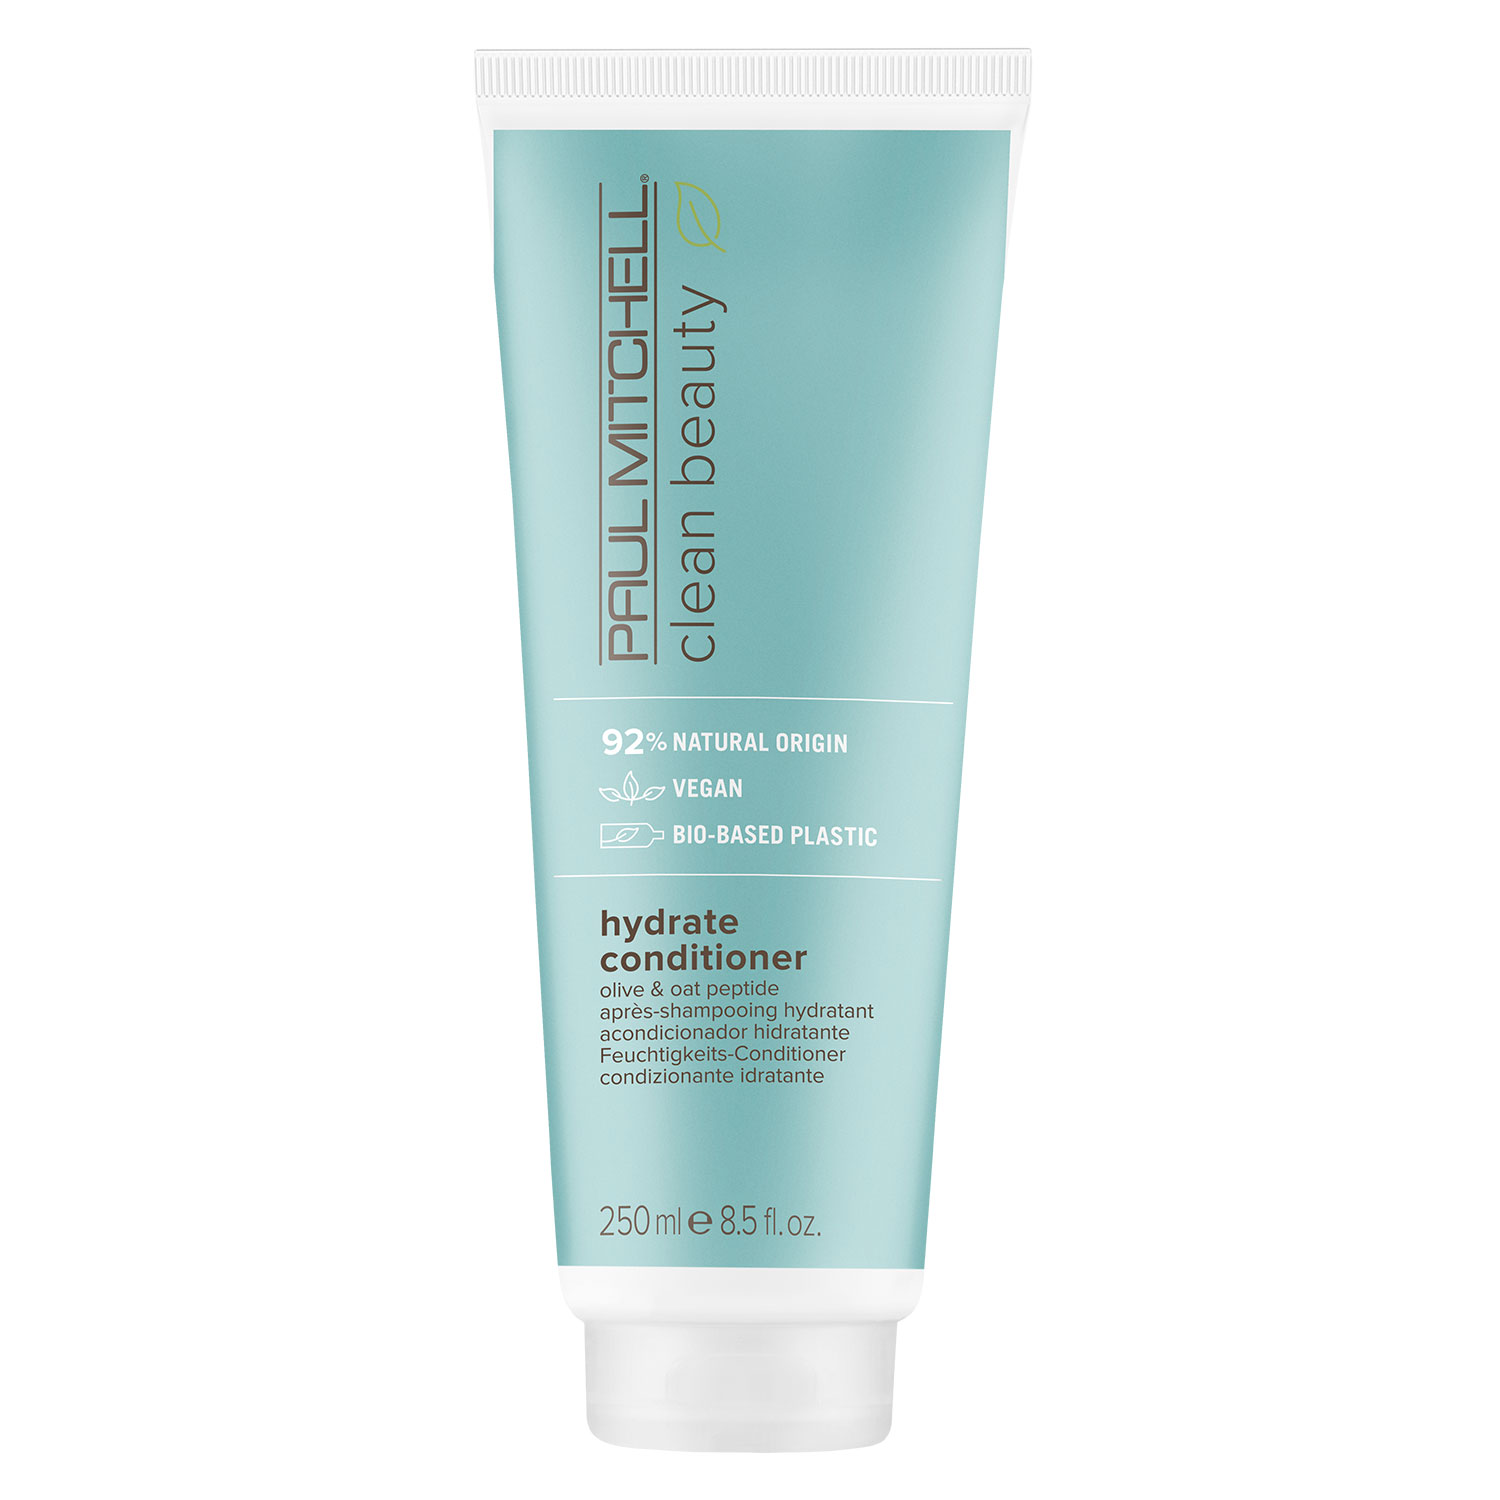 Paul Mitchell Clean Beauty - Hydrate Conditioner